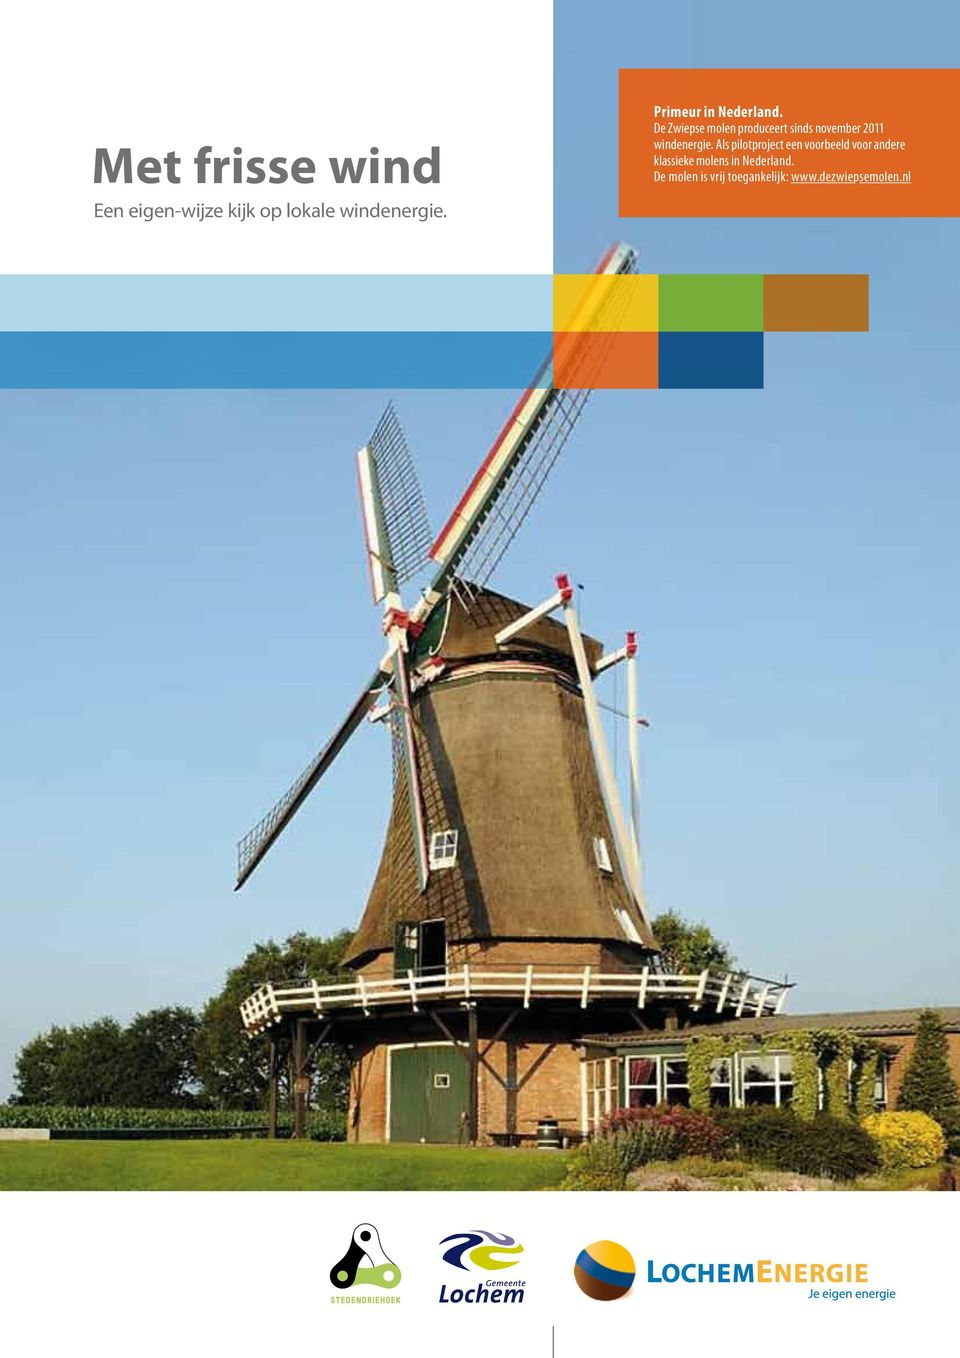 De Zwiepse molen produceert sinds november 2011 windenergie.